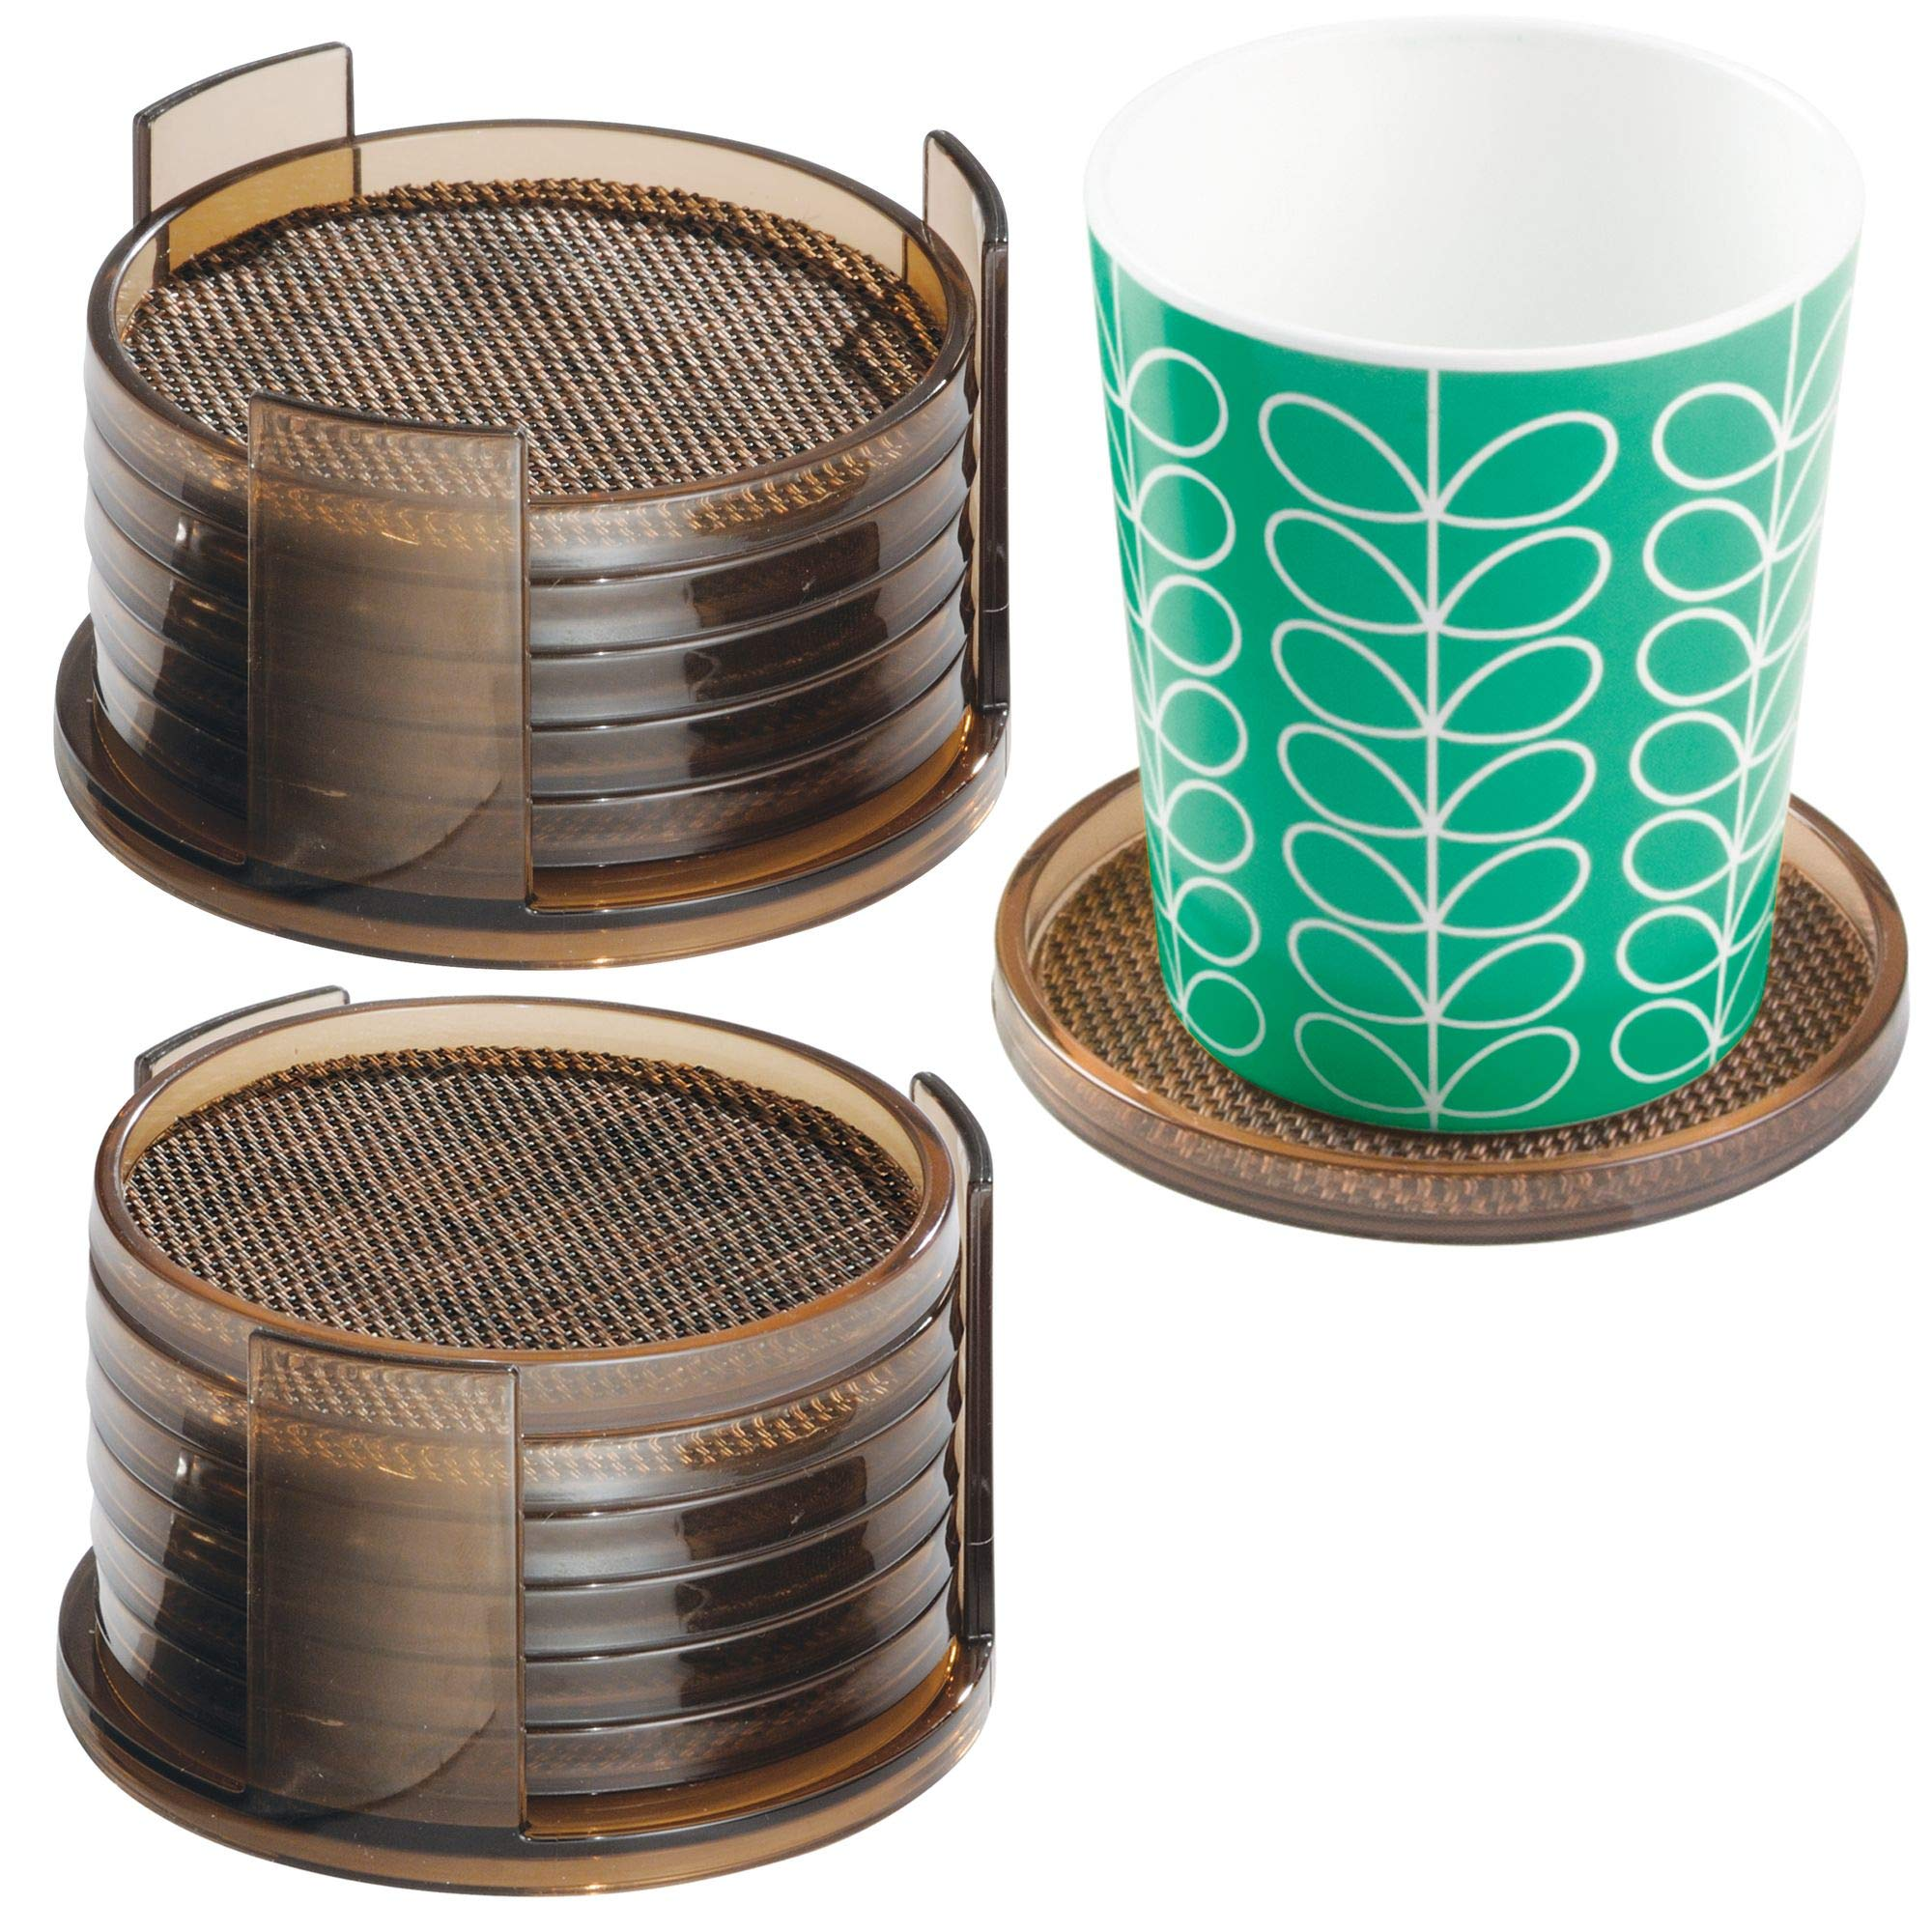 mDesign Decorative Drink Coasters with Holders - Protect Tabletops and Furniture from Water Marks and Damage - Woven Texture - Set of 2 Holders and 12 Coasters, Bronze/Sand